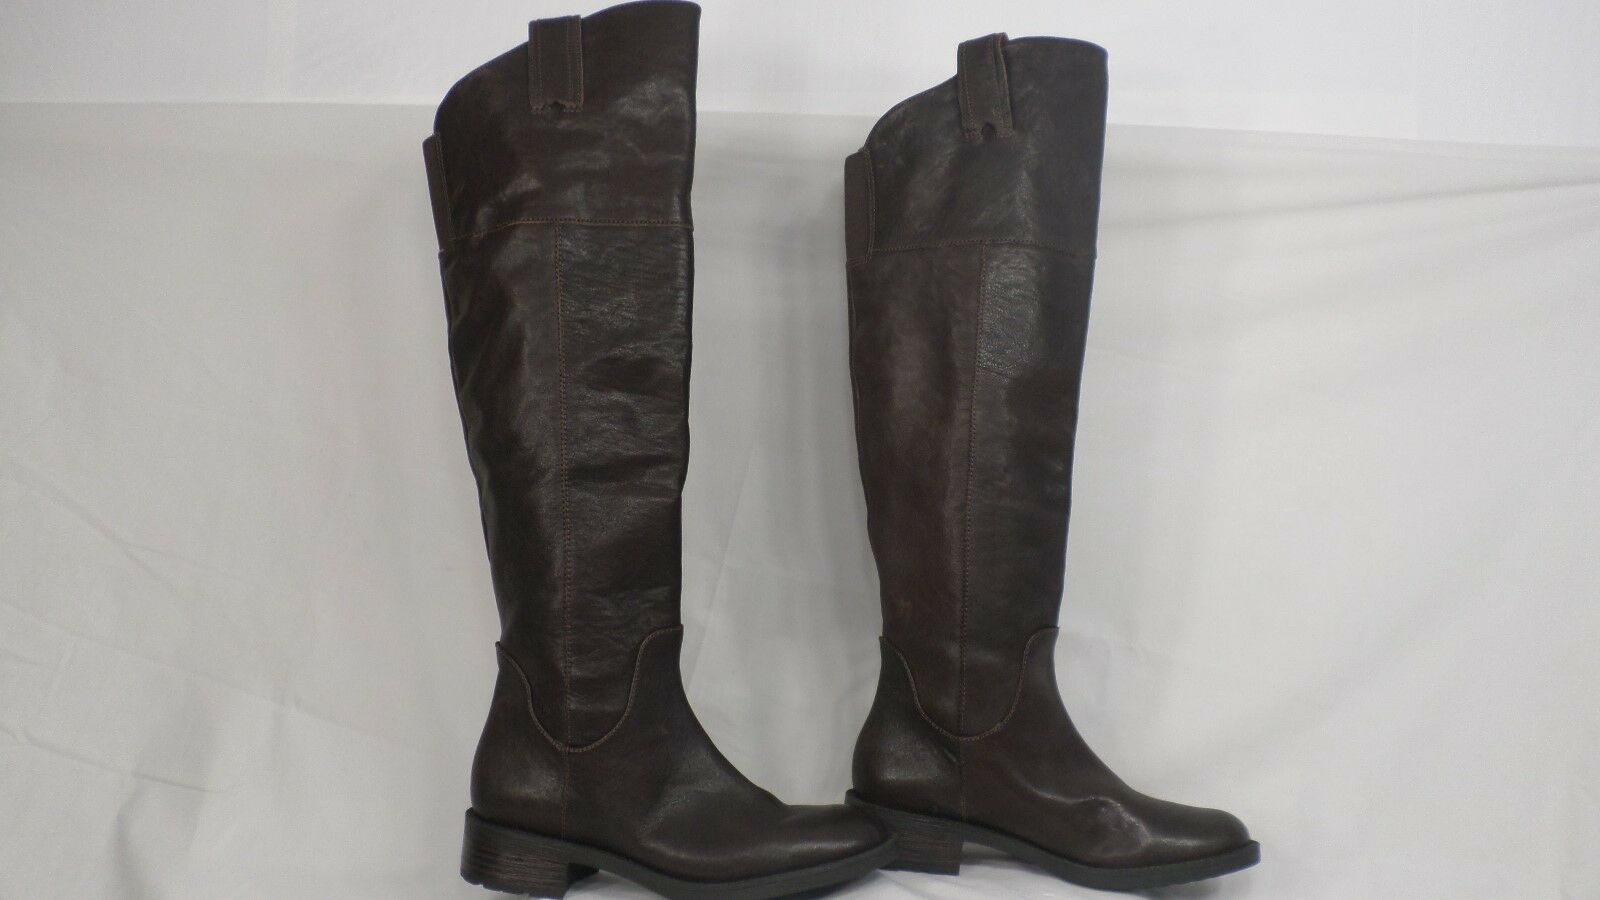 Enzo Angiolini 'Holdyn' Dark Brown Leather Over-the-Knee Pull-On Boot Size 6 M